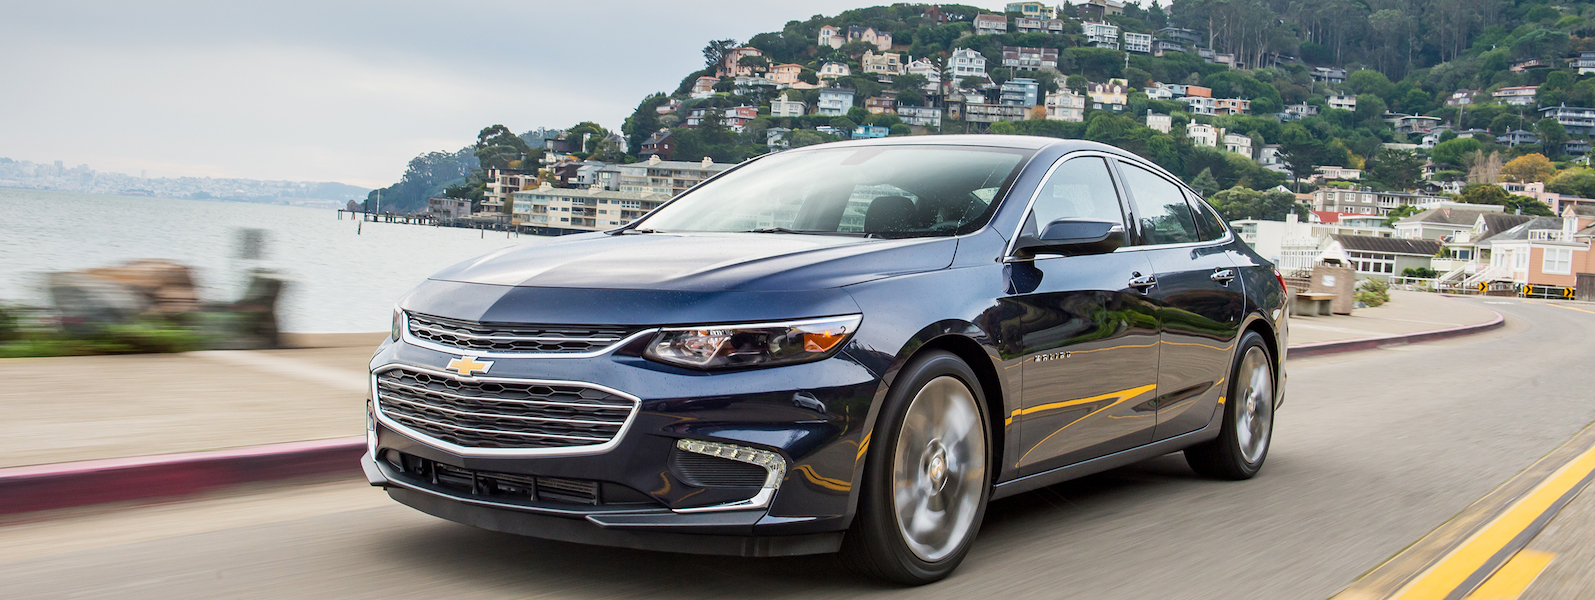 2016 Chevy Malibu Performance